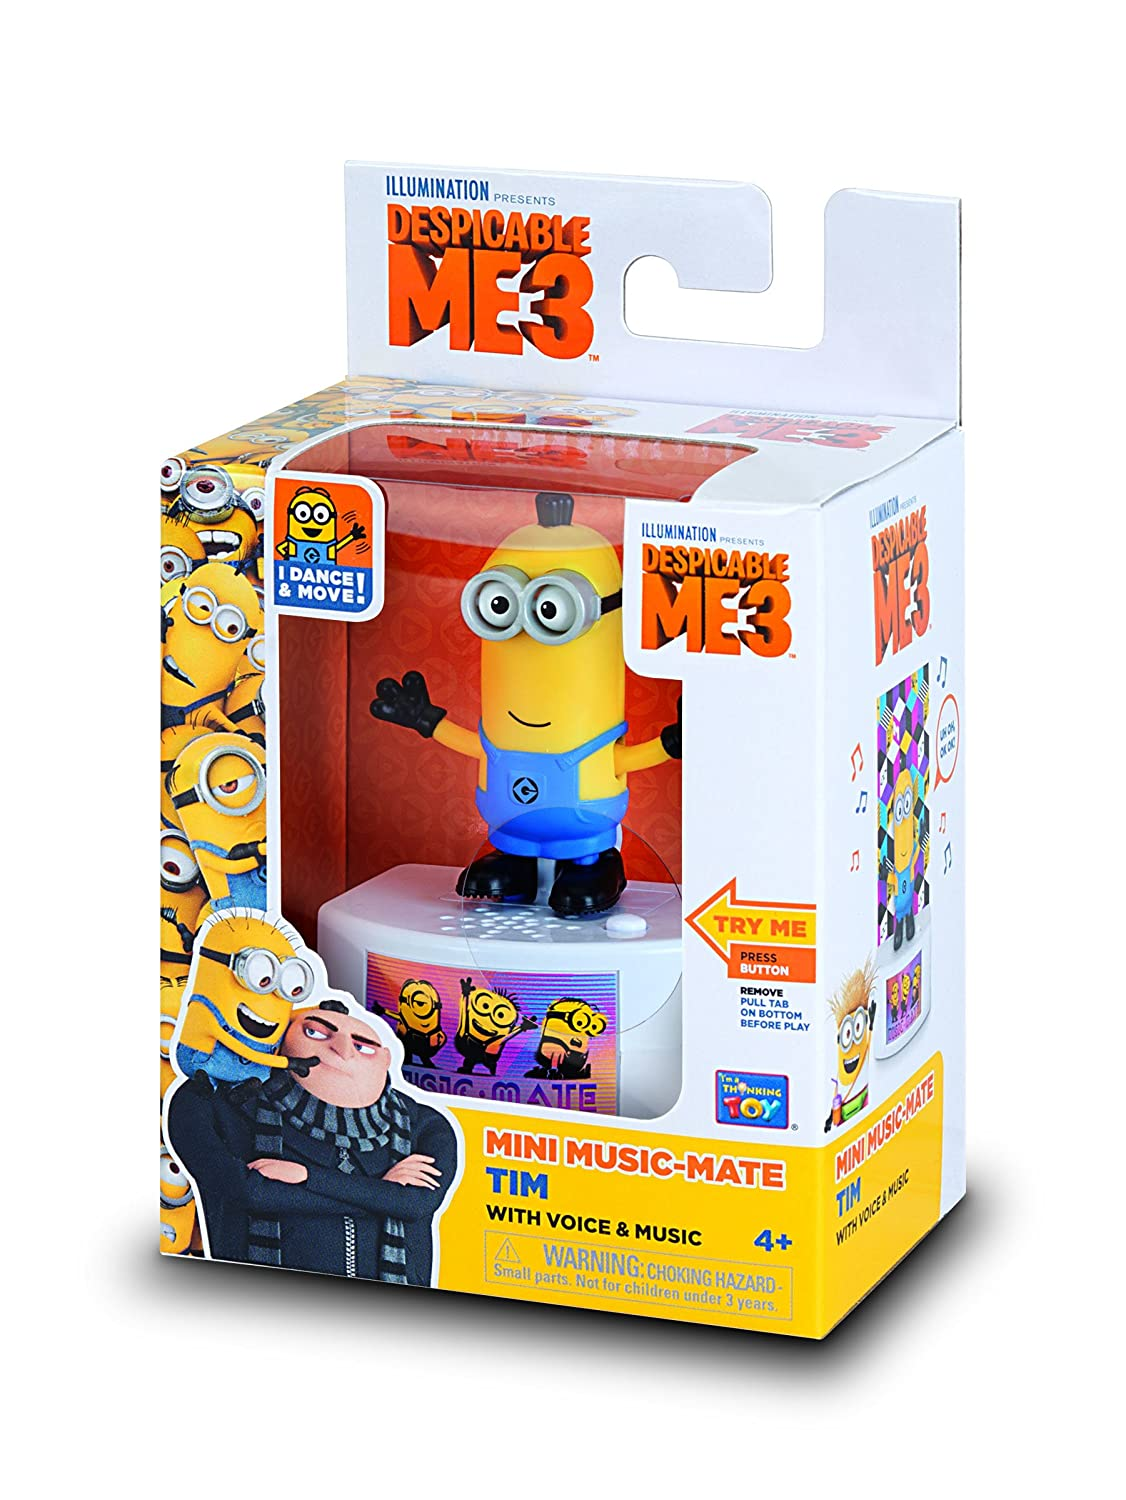 Despicable Me Music-Mate Minion Tim Toy Figure